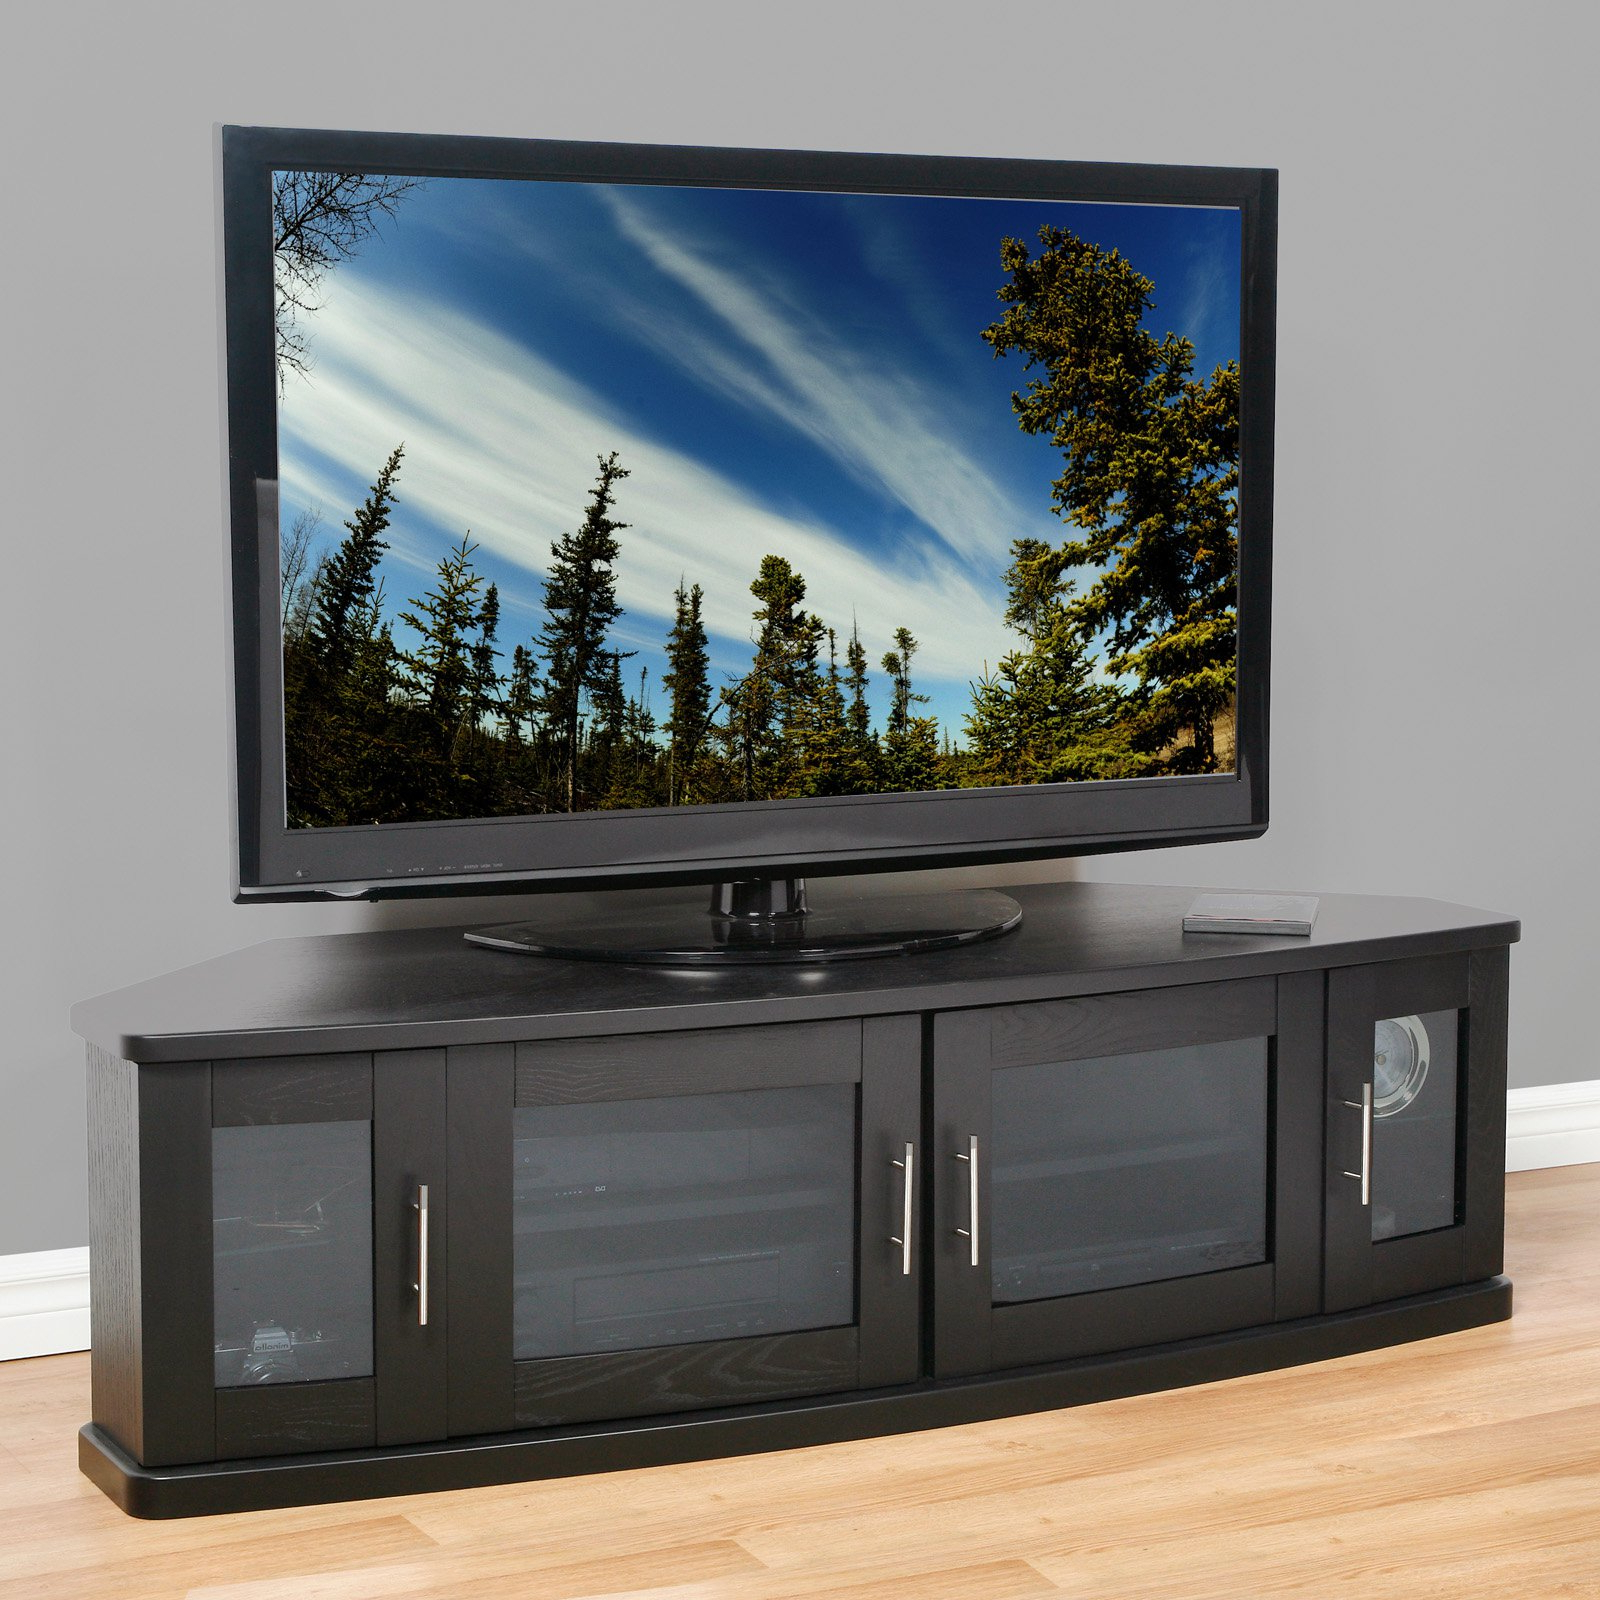 Chrome Display Stands Clear Tv With Glass Shelves Stand Corner Intended For Well Liked Corner Tv Unit With Glass Doors (Gallery 6 of 20)